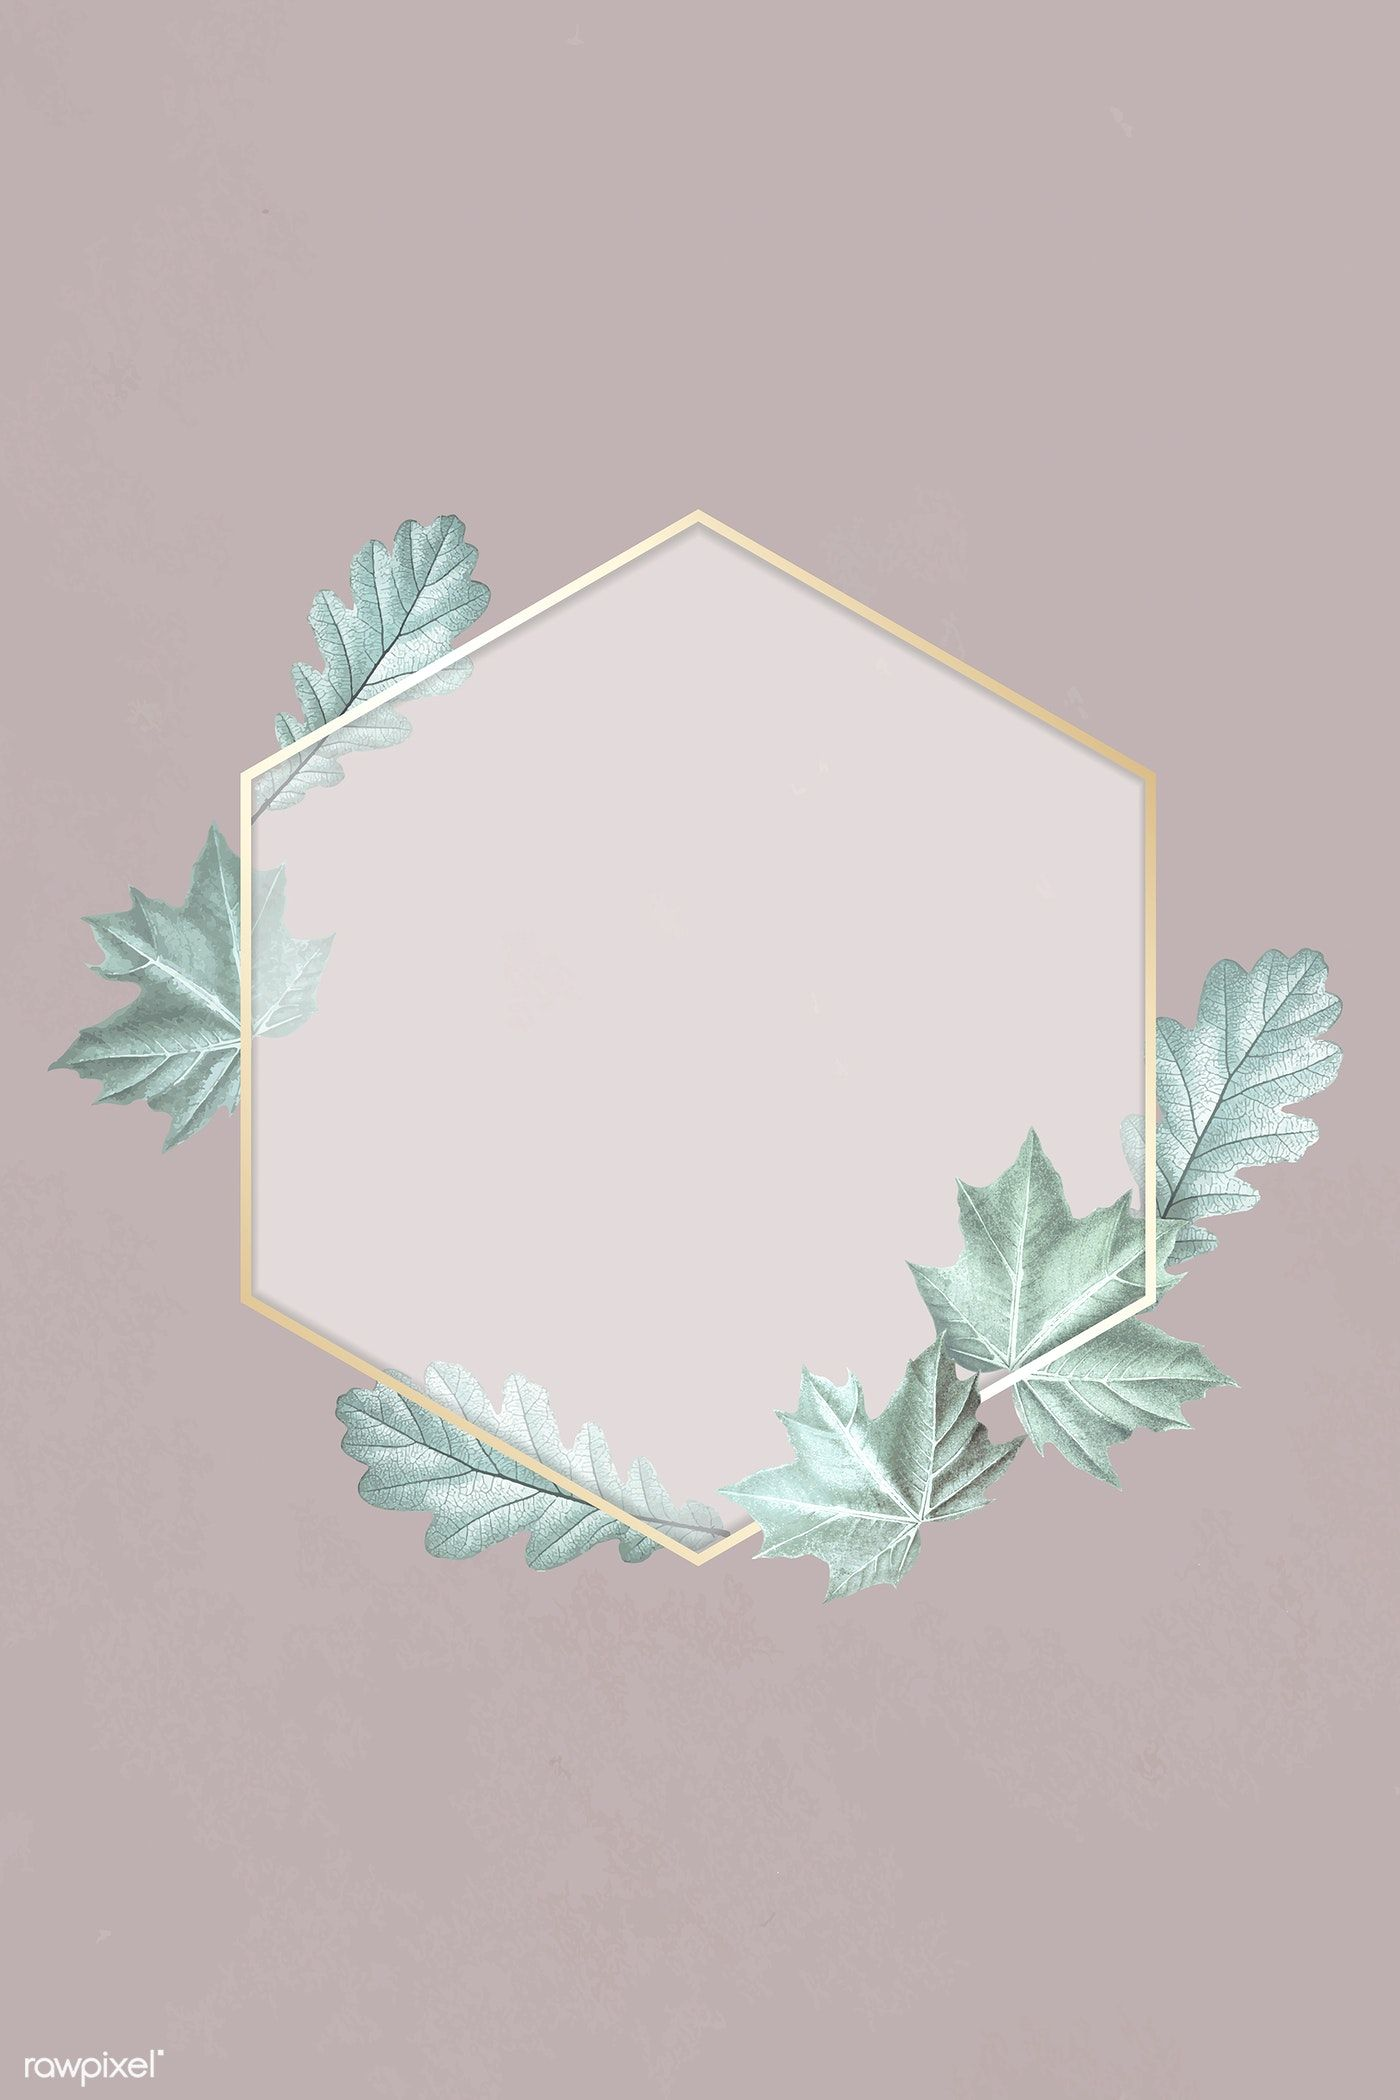 Download premium vector of Green leafy hexagon gold frame